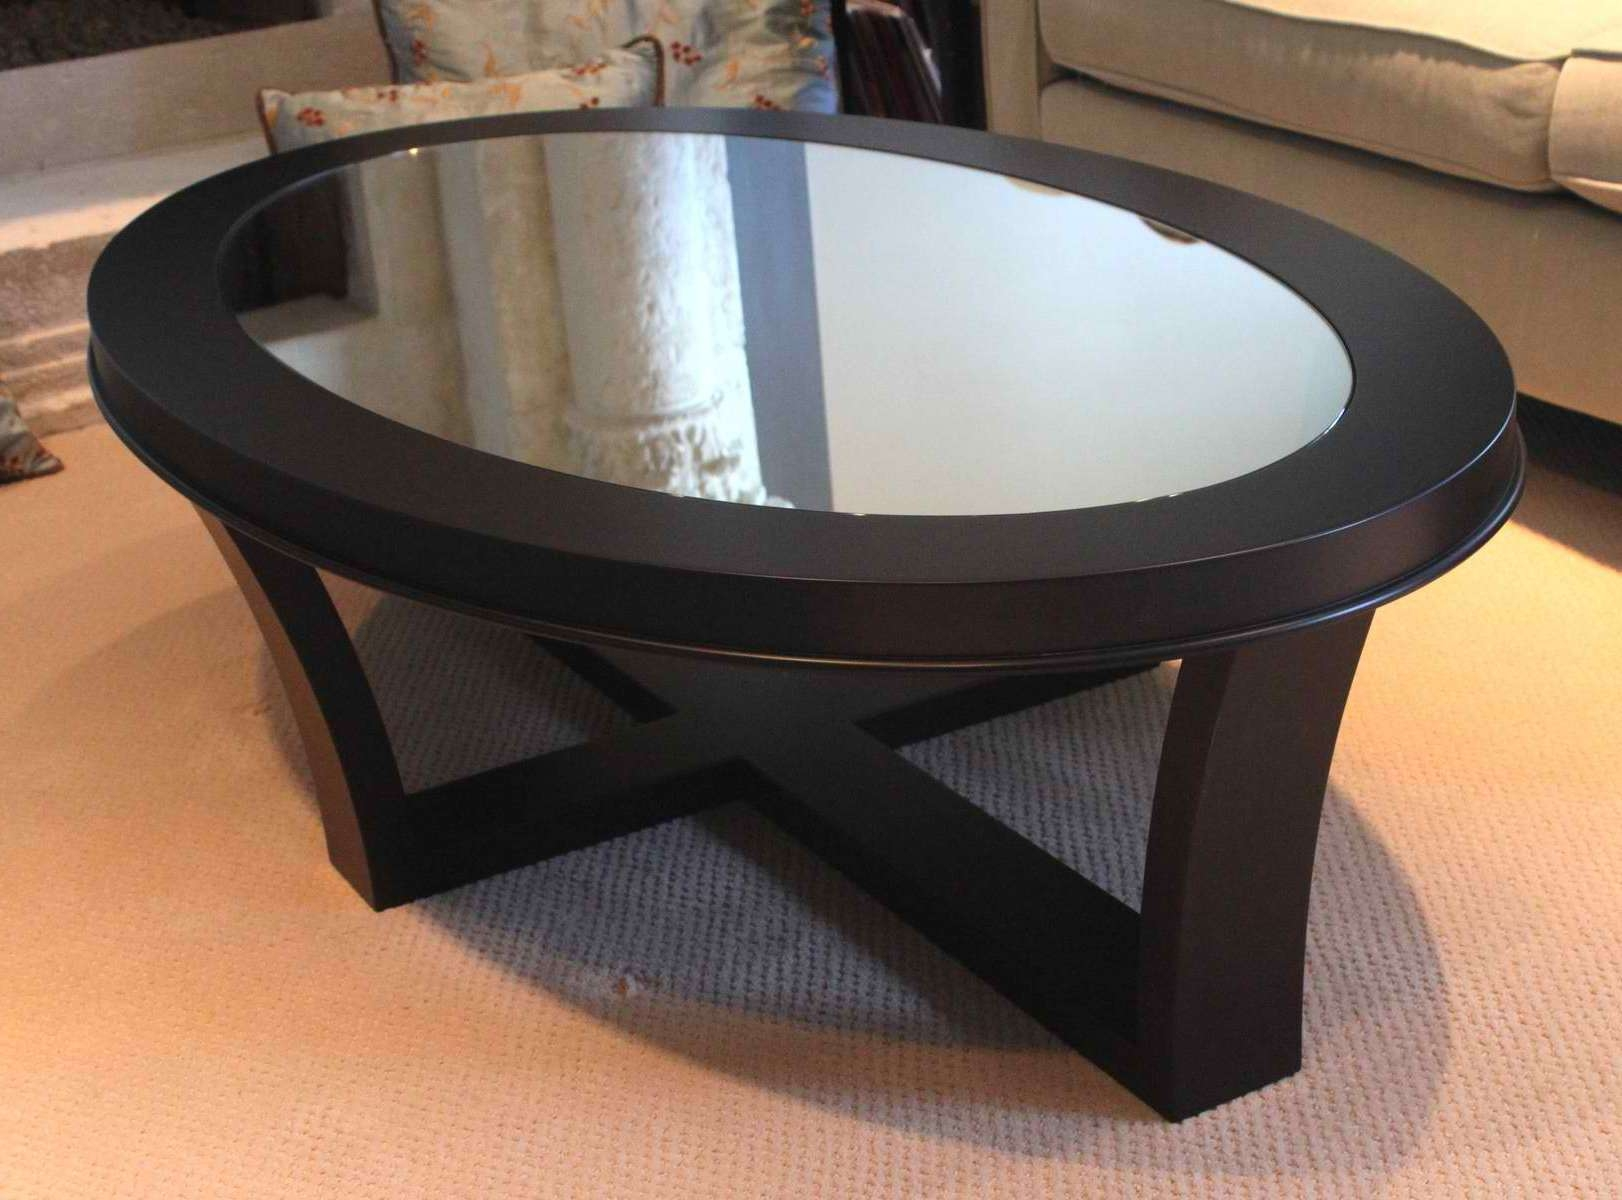 Most Recently Released Oval Glass And Wood Coffee Tables Throughout Oval Glass Top Coffee Table With Storage And Wooden Base With (View 12 of 20)